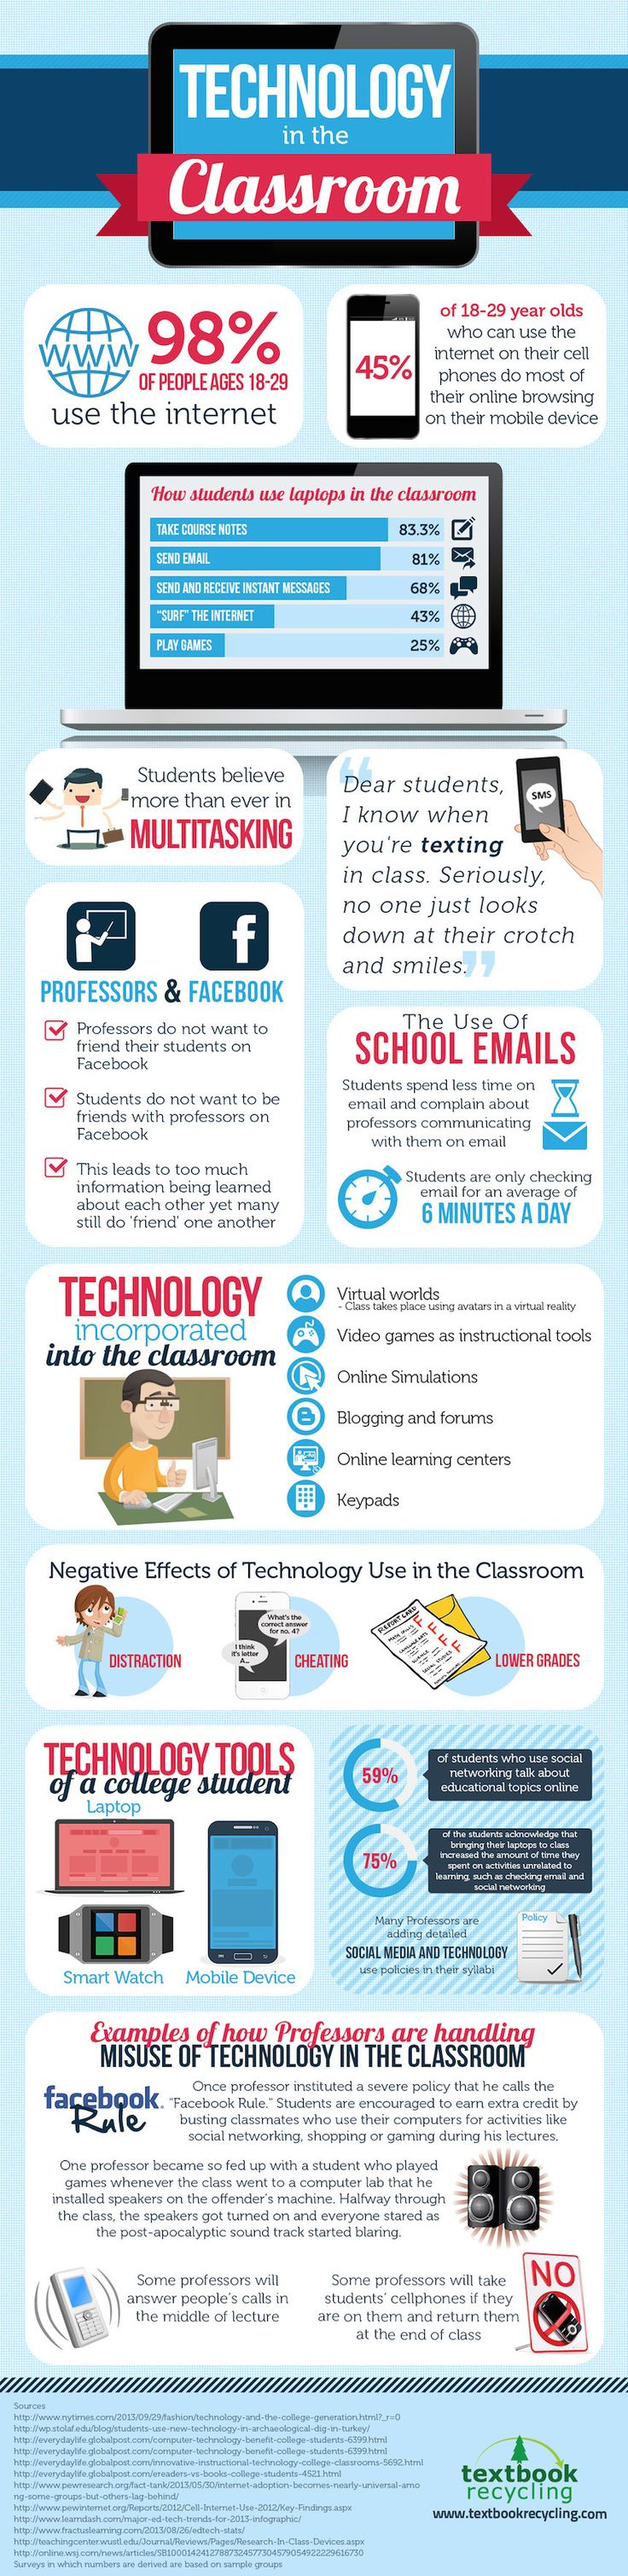 [Infographic] How Students are Learning with Technology in the Classroom